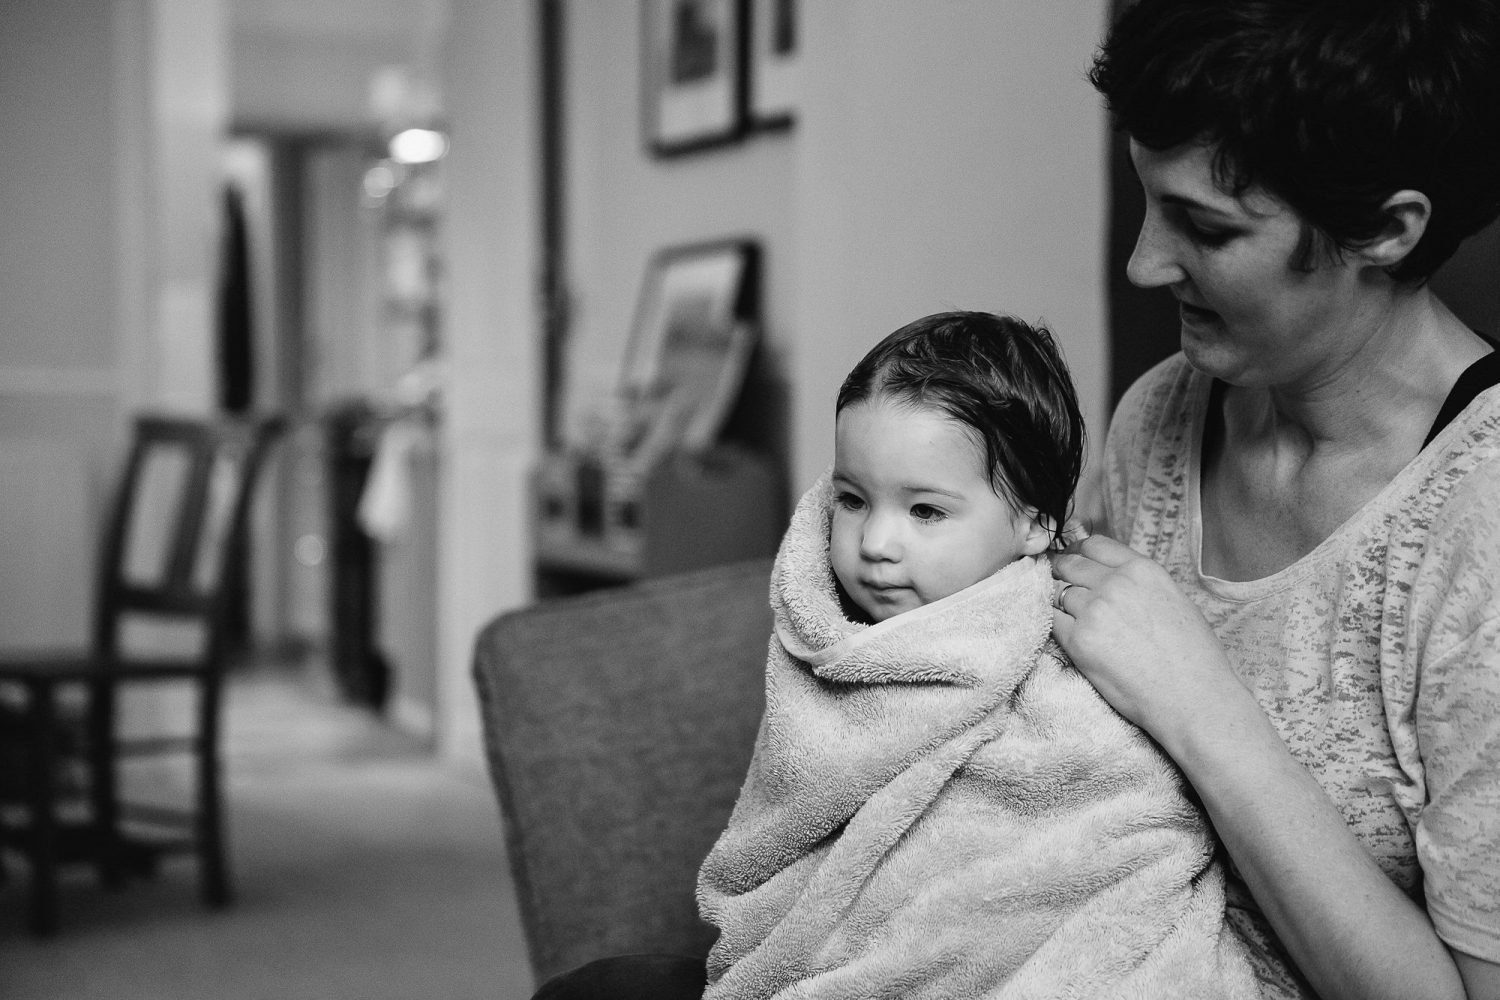 young toddler girl wrapped up in towel with her Mum black and white image